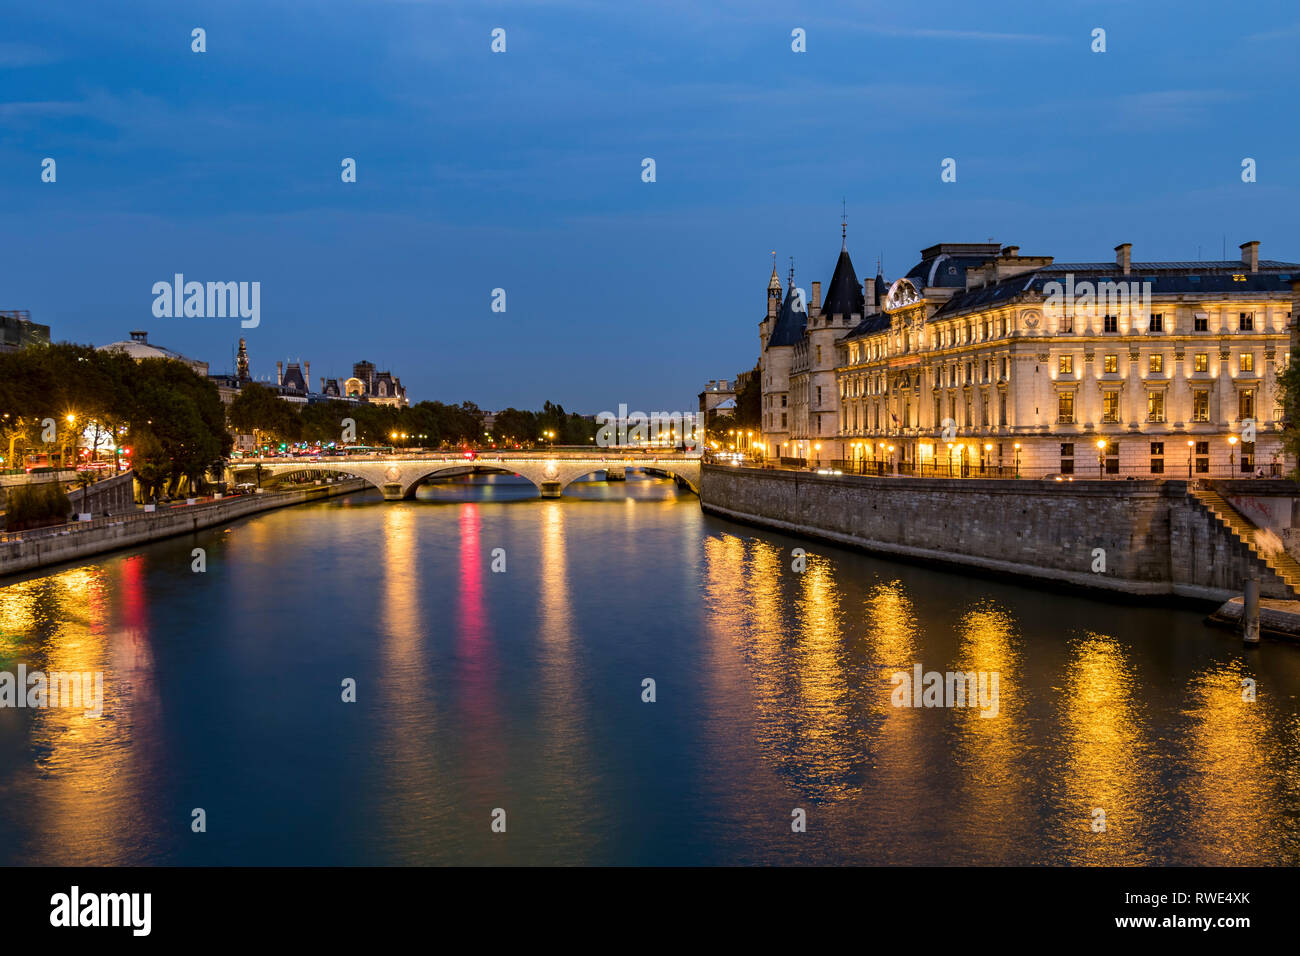 Lights reflecting off The River Seine at night  from Pont Neuf, with Pont au Change and The Turrets of The Conciergerie on the Île de la Cité ,Paris - Stock Image